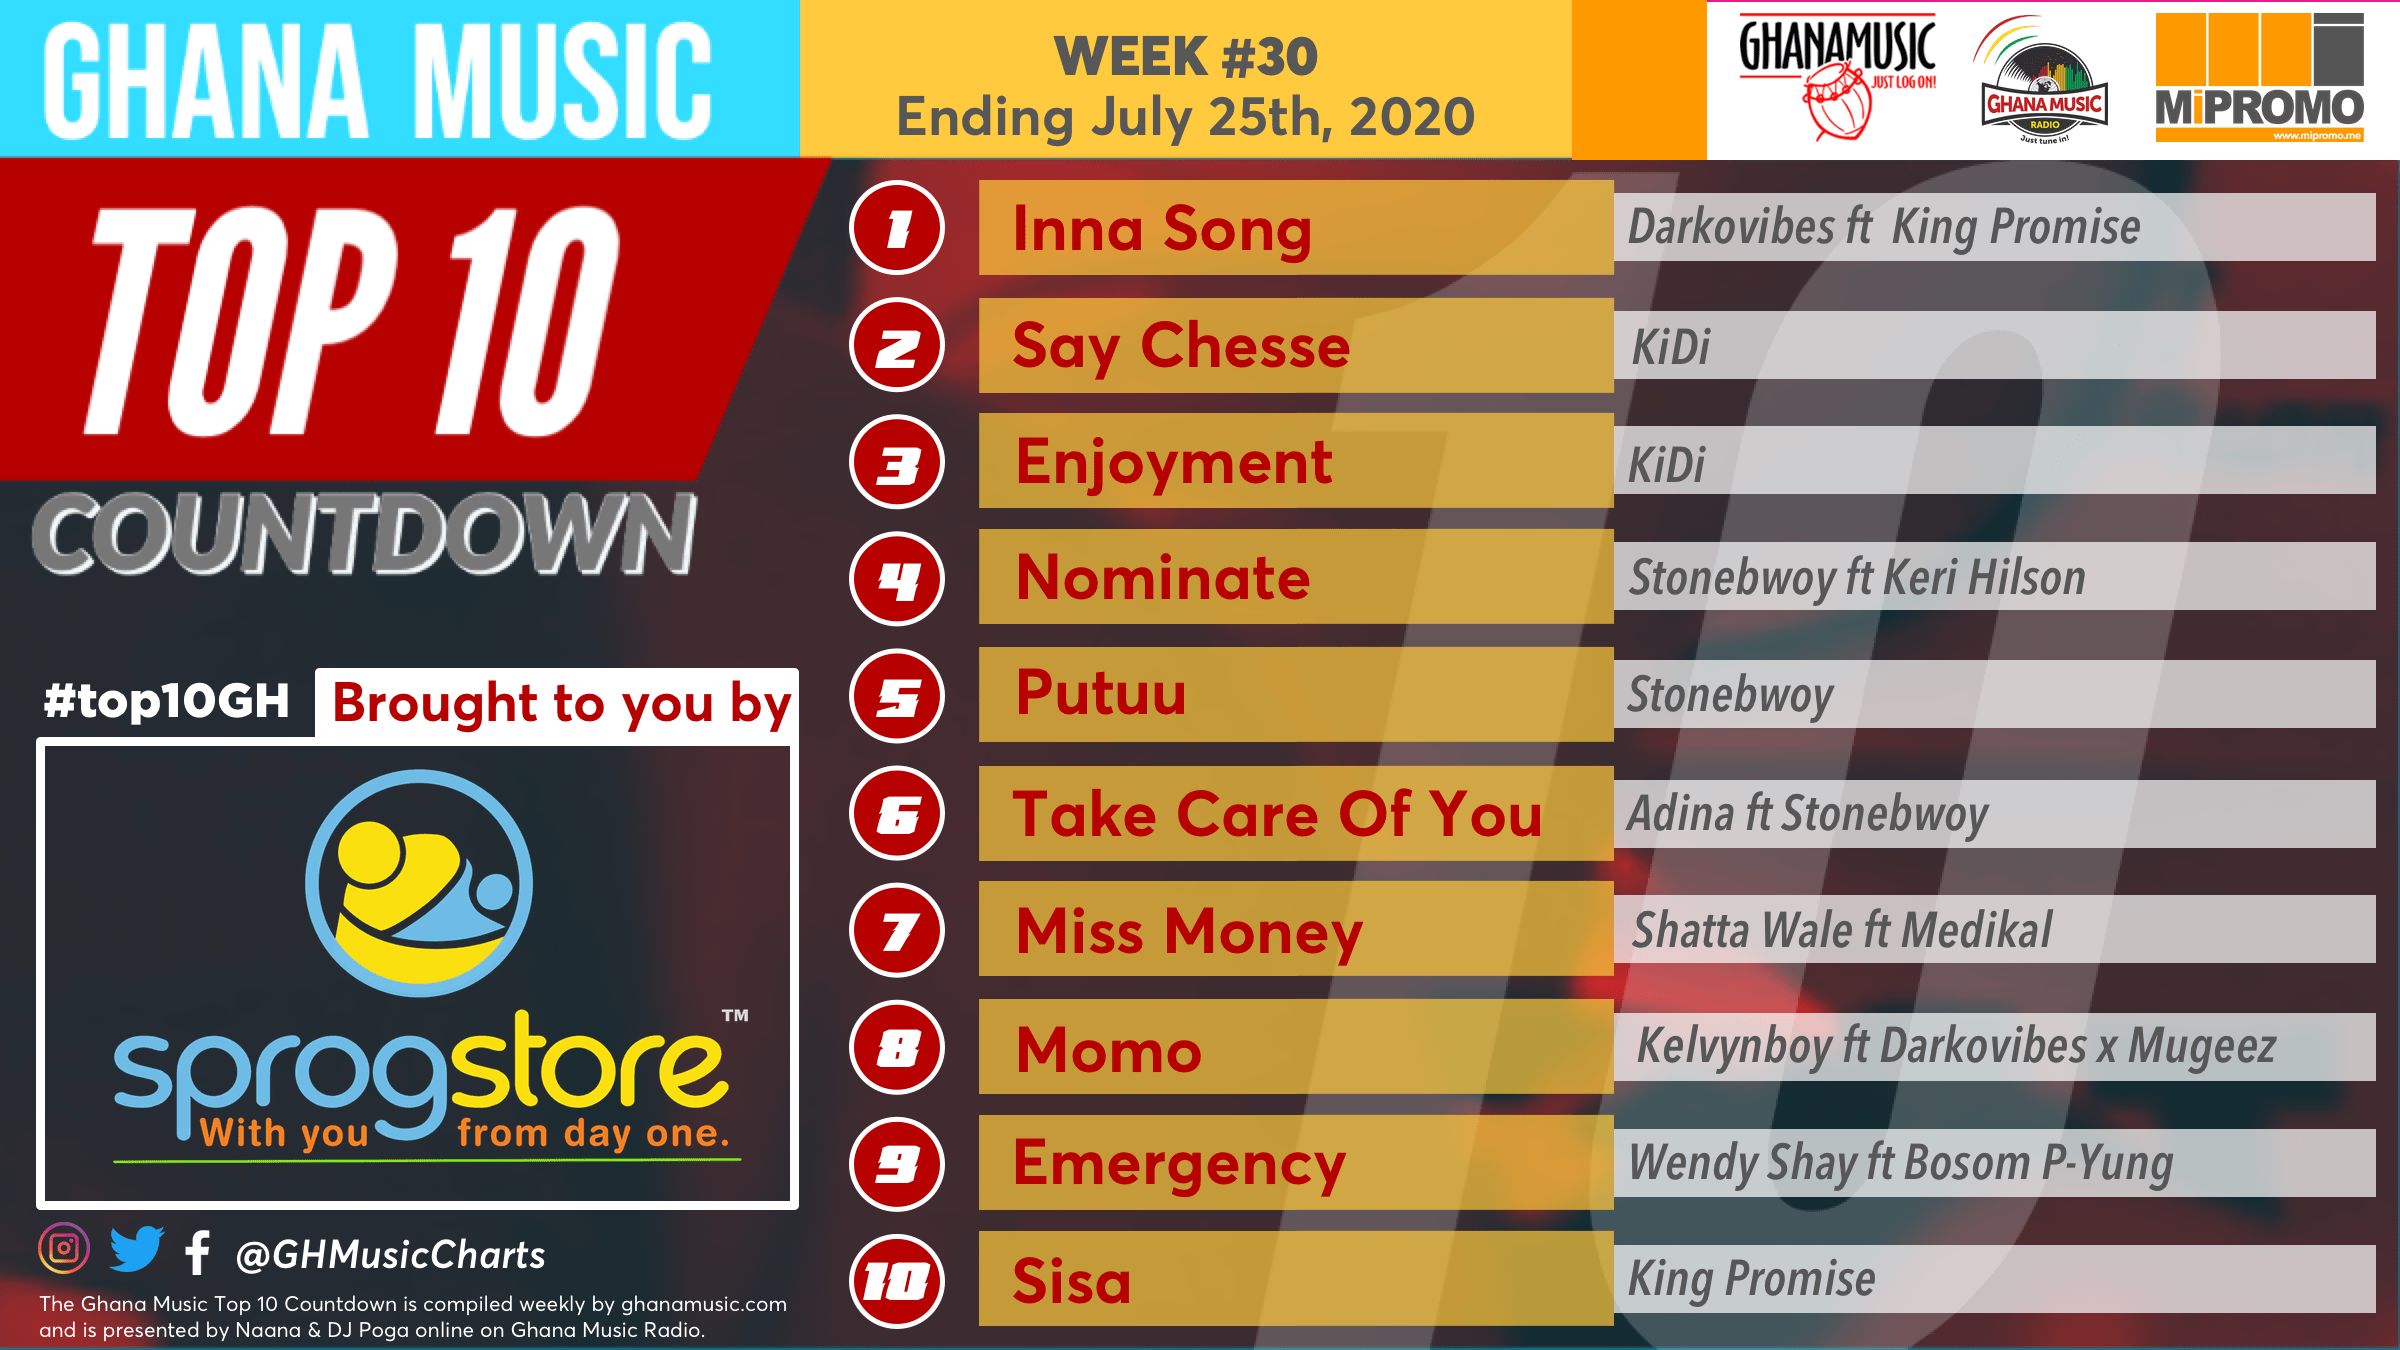 2020 Week 30: Ghana Music Top 10 Countdown